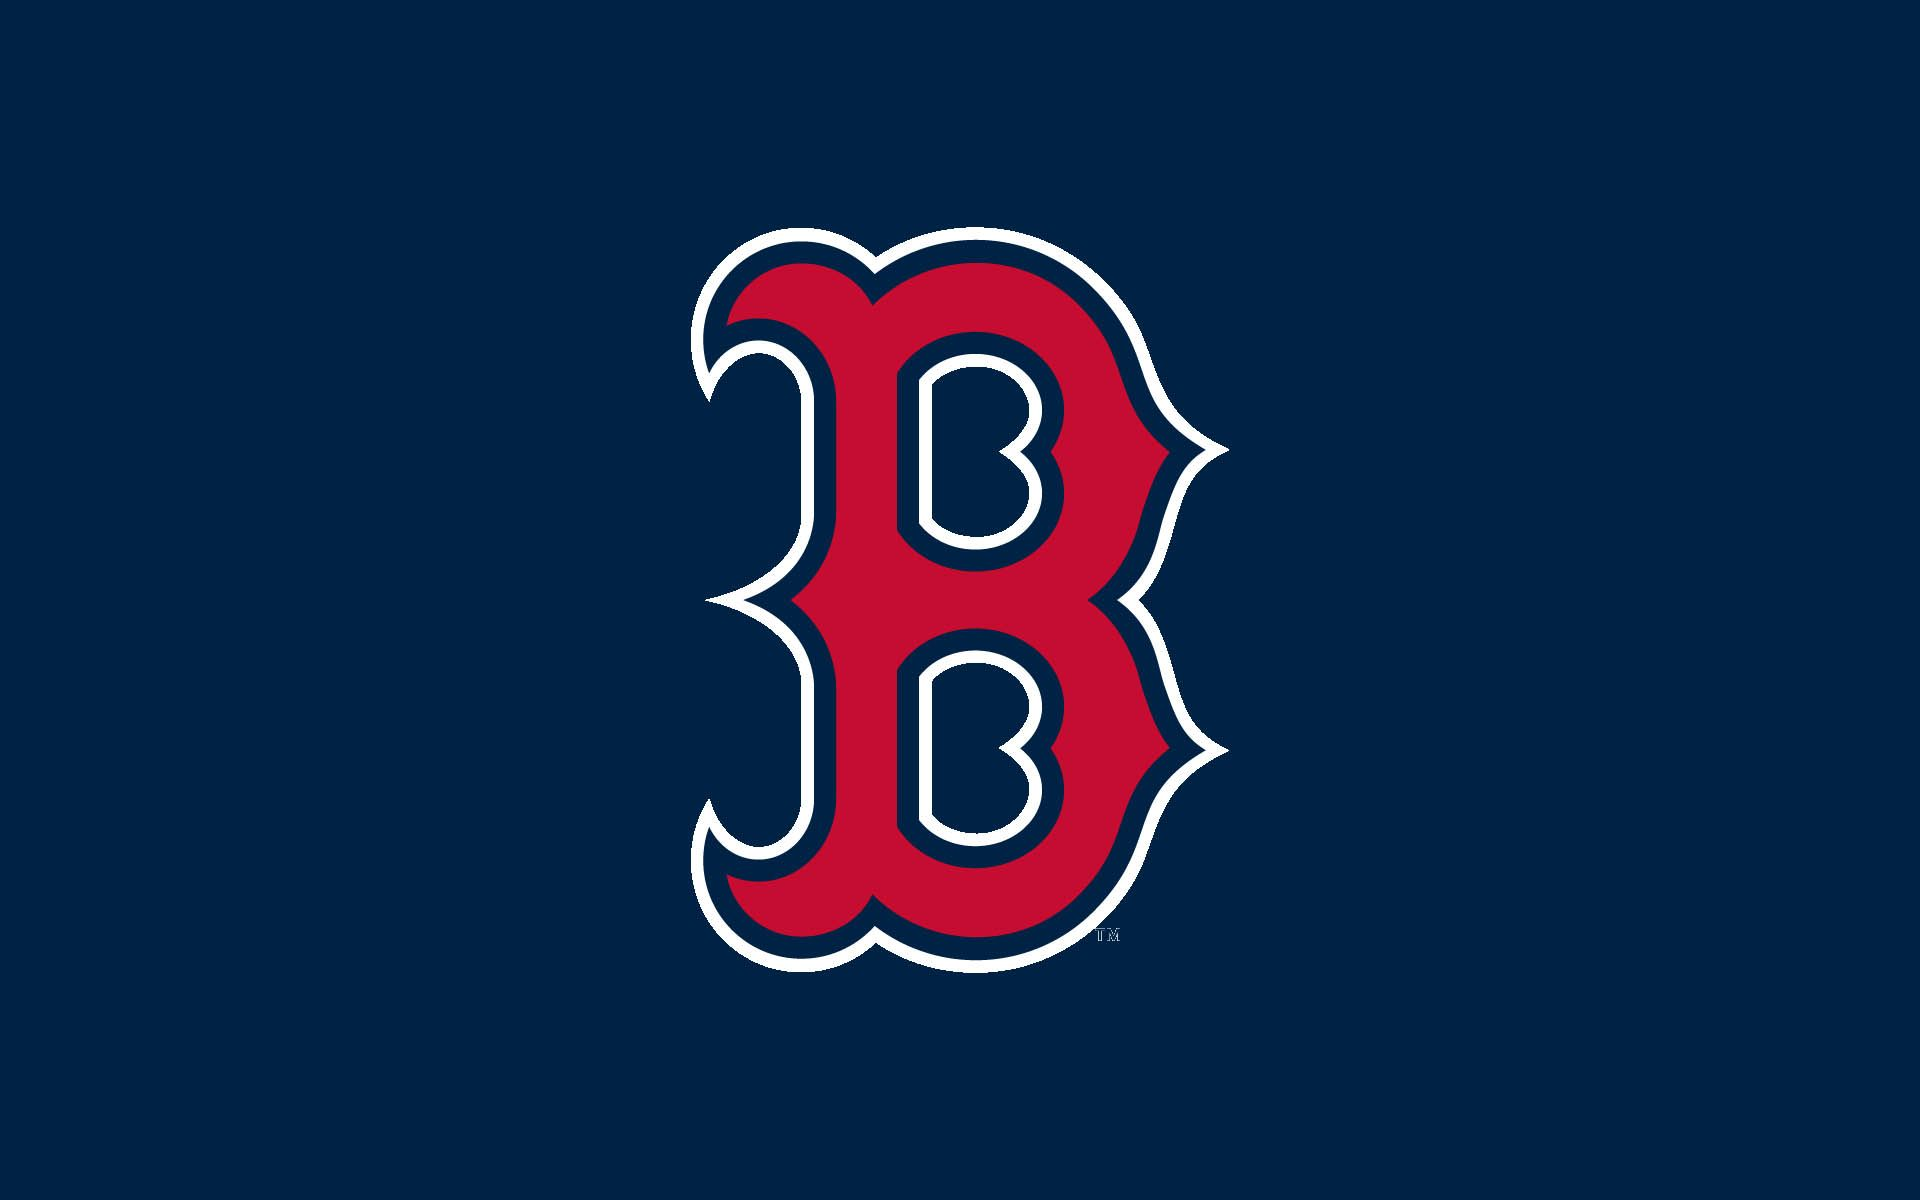 Boston red sox images wallpaper   SF Wallpaper 1920x1200